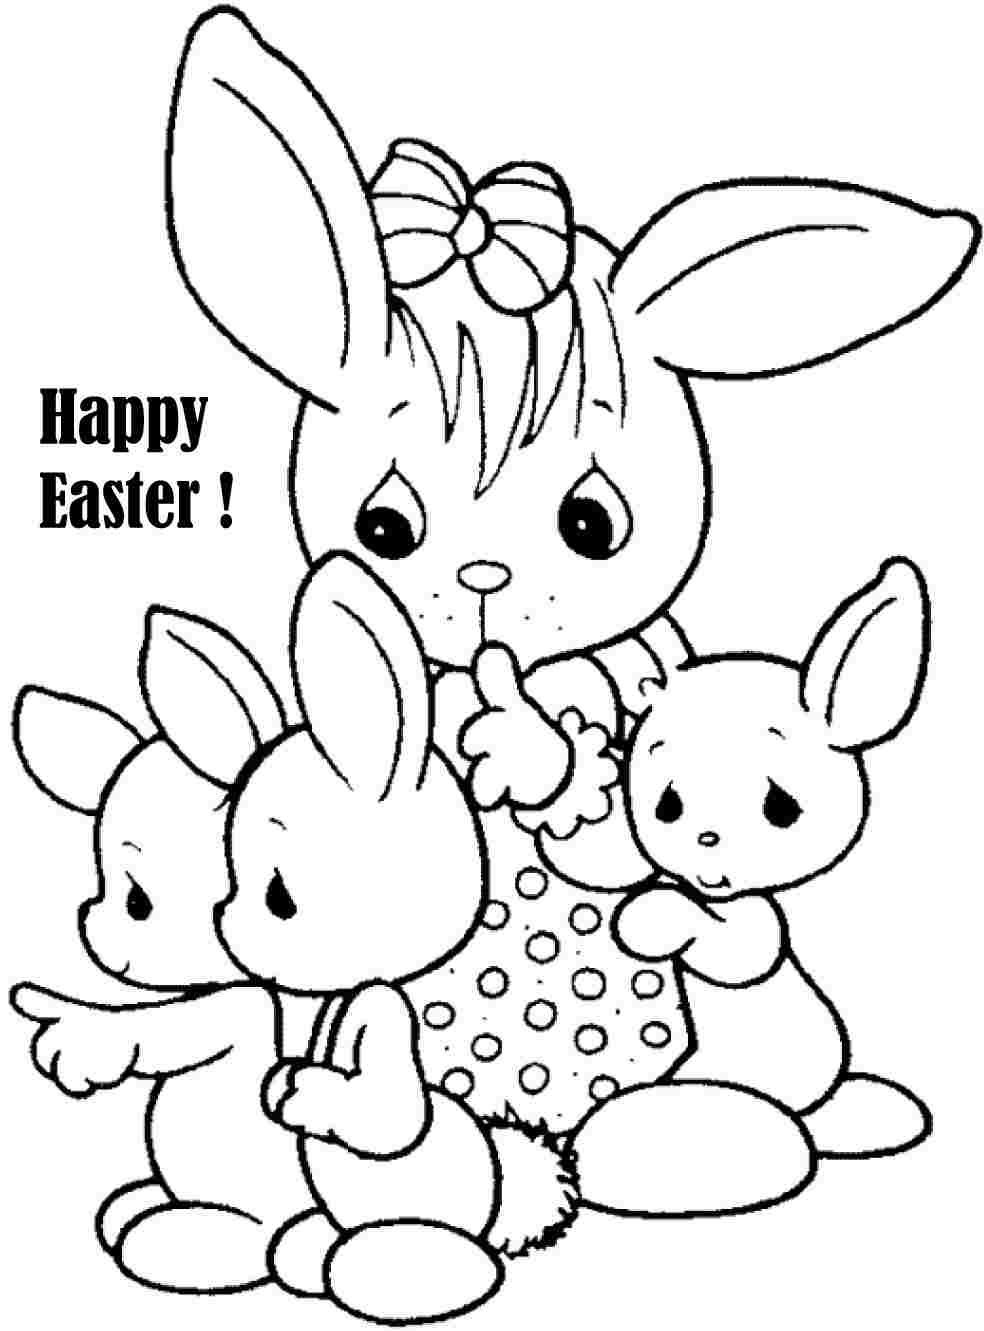 Printable Free Colouring Sheets Easter Bunny For Preschool